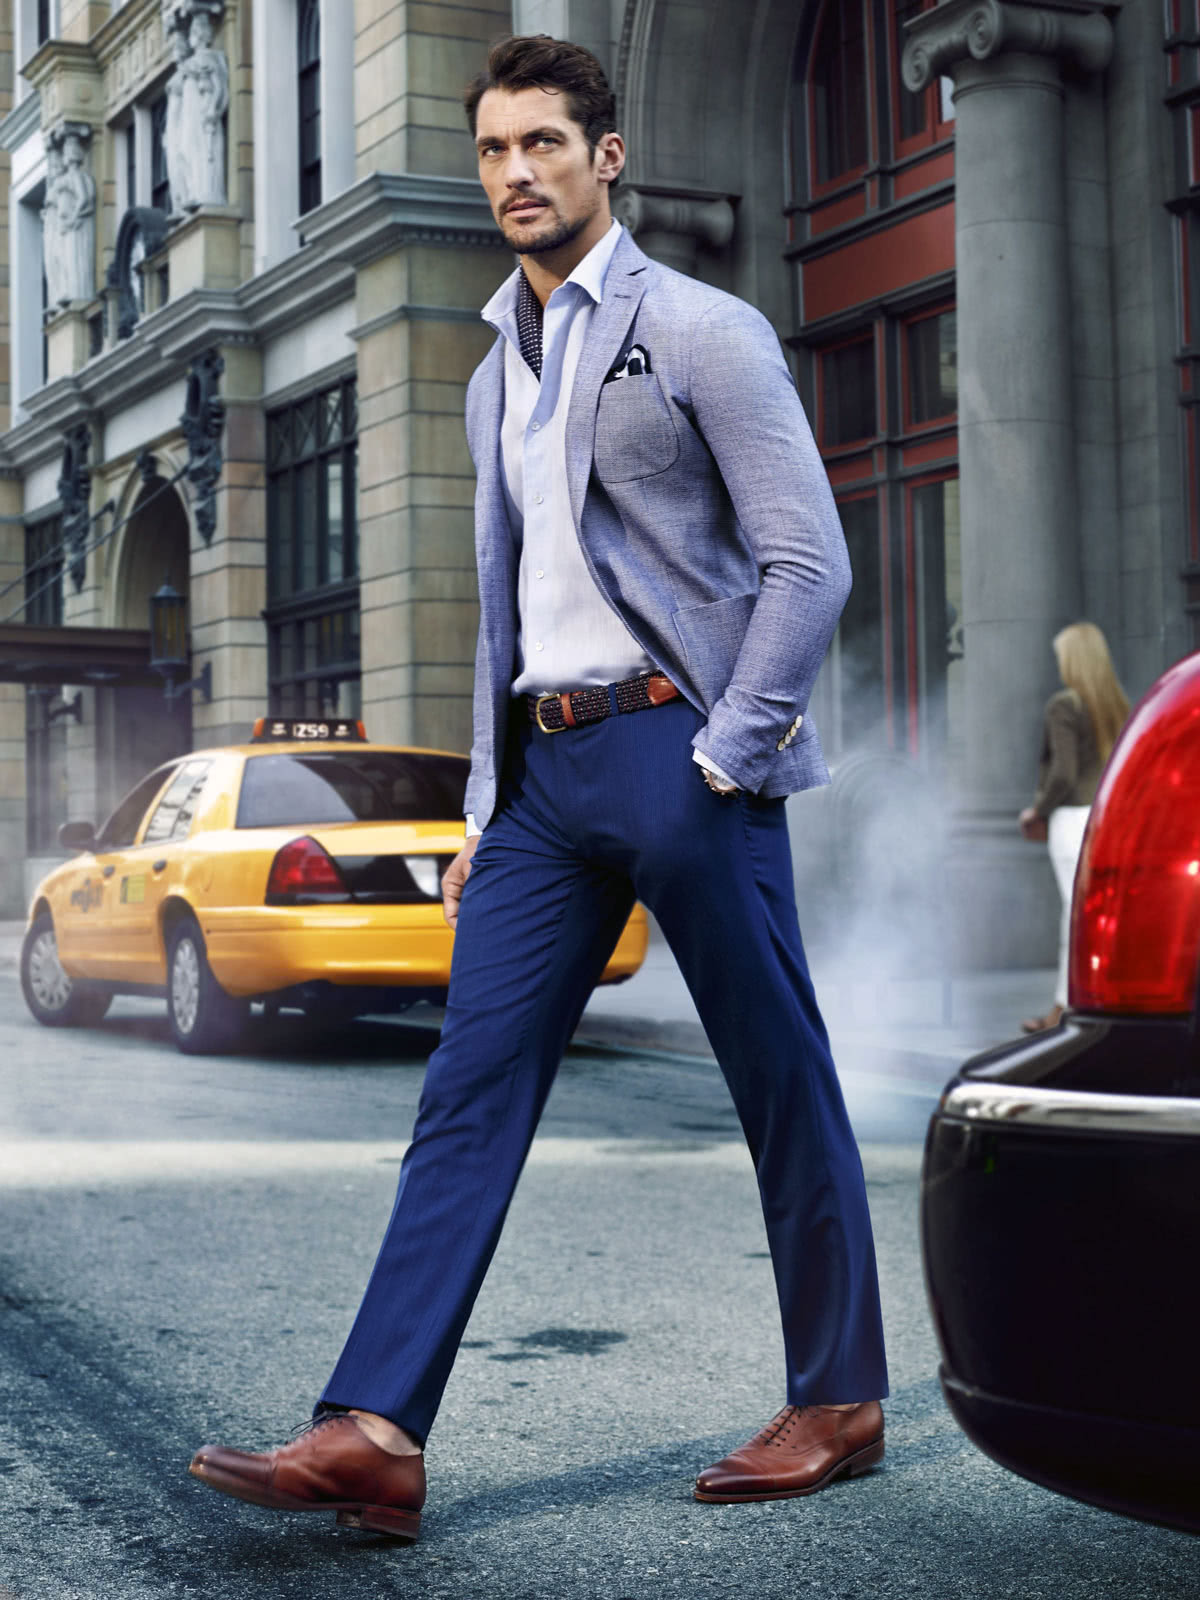 56e8736f Smart Casual Dress Code For Men: Ultimate Style Guide (2019 Updated)